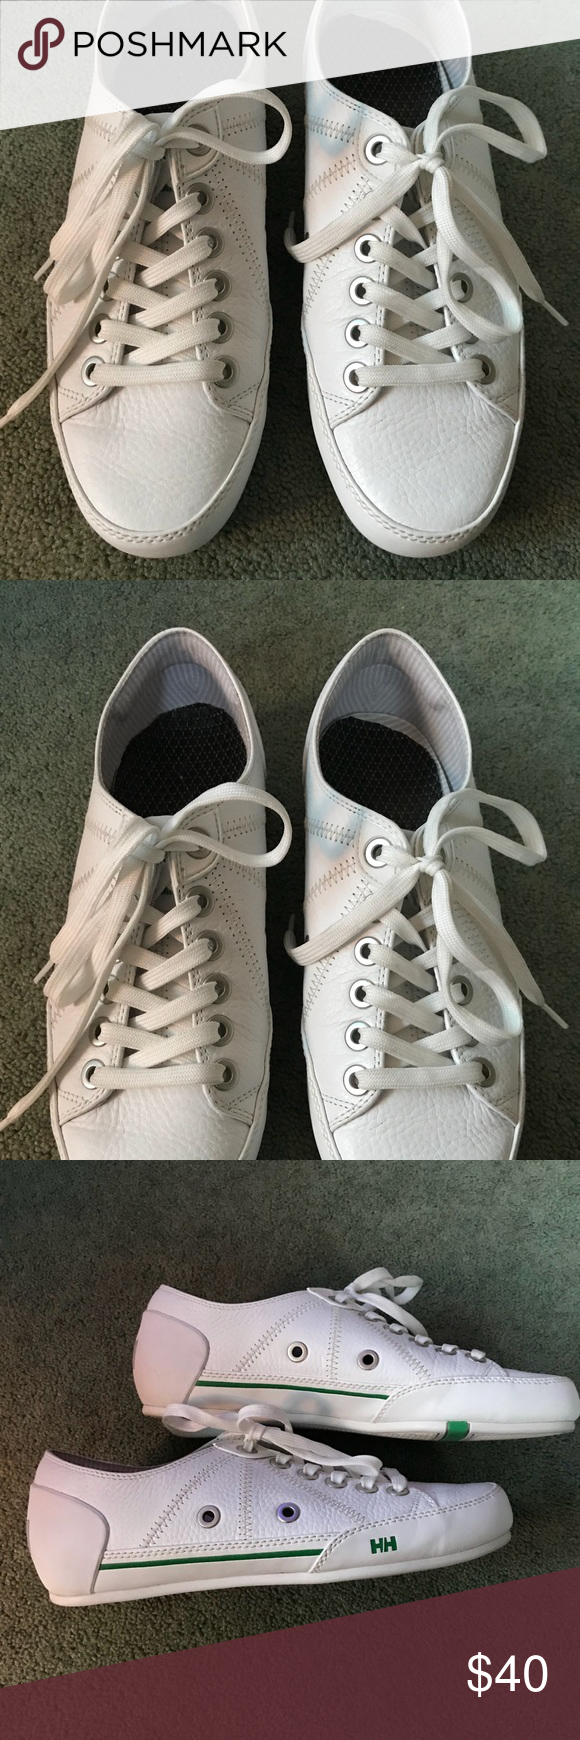 Mens Helly Hansen Leather tennis shoes Mens Helly Hansen White Leather Tennis Shoe size 7. They are in Excellent Condition with barely any wear! Please feel free to ask any questions. Helly Hansen Shoes Sneakers